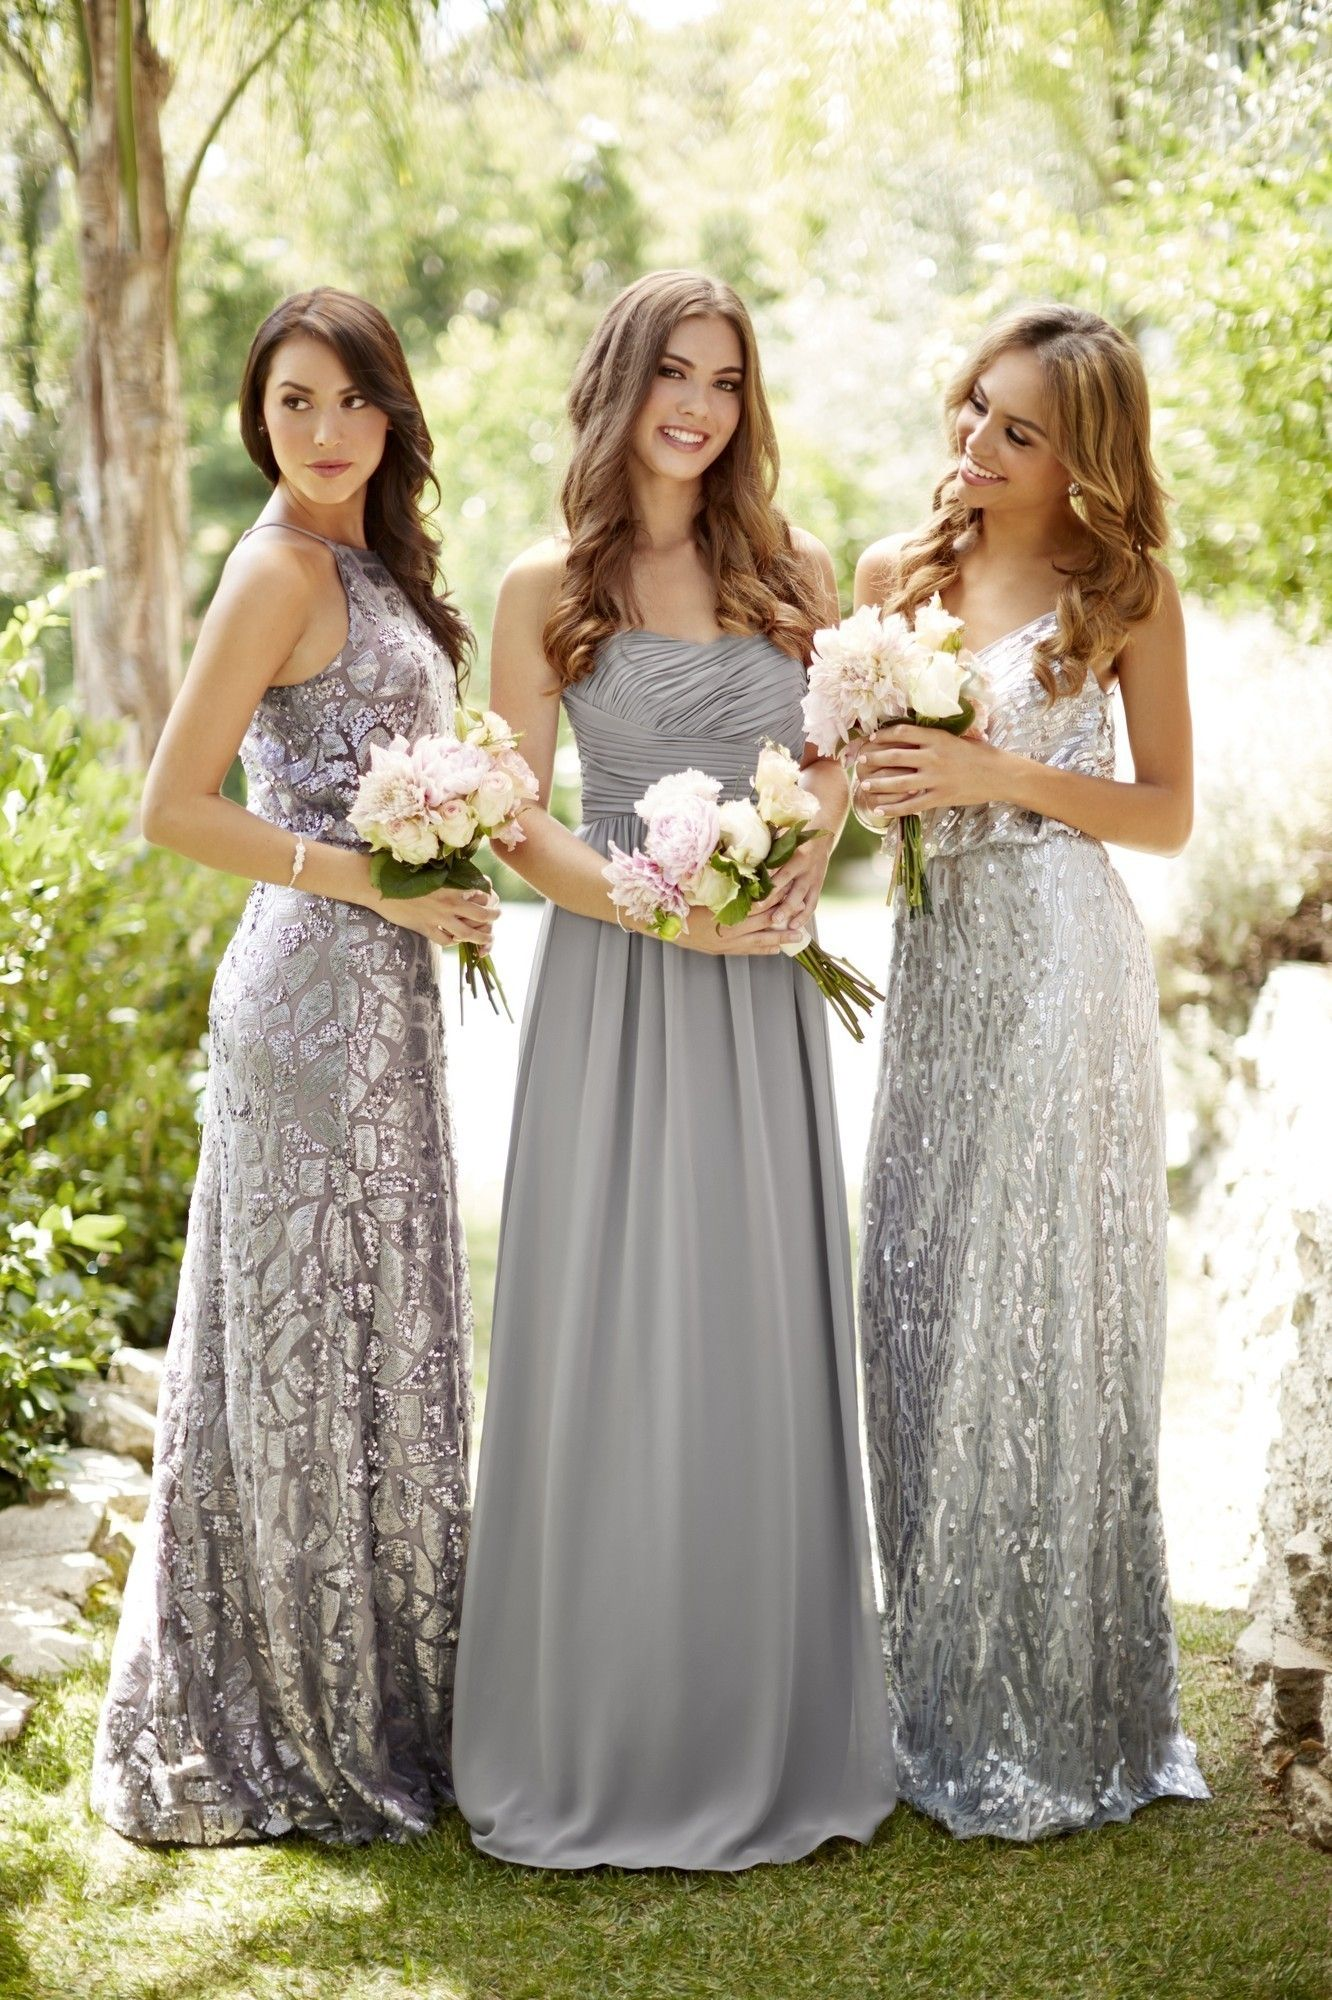 Lulakate ella tiffany dresses silver lining and renting always look for the silver lining love our sequin cloud courtney and tiffany ombrellifo Choice Image